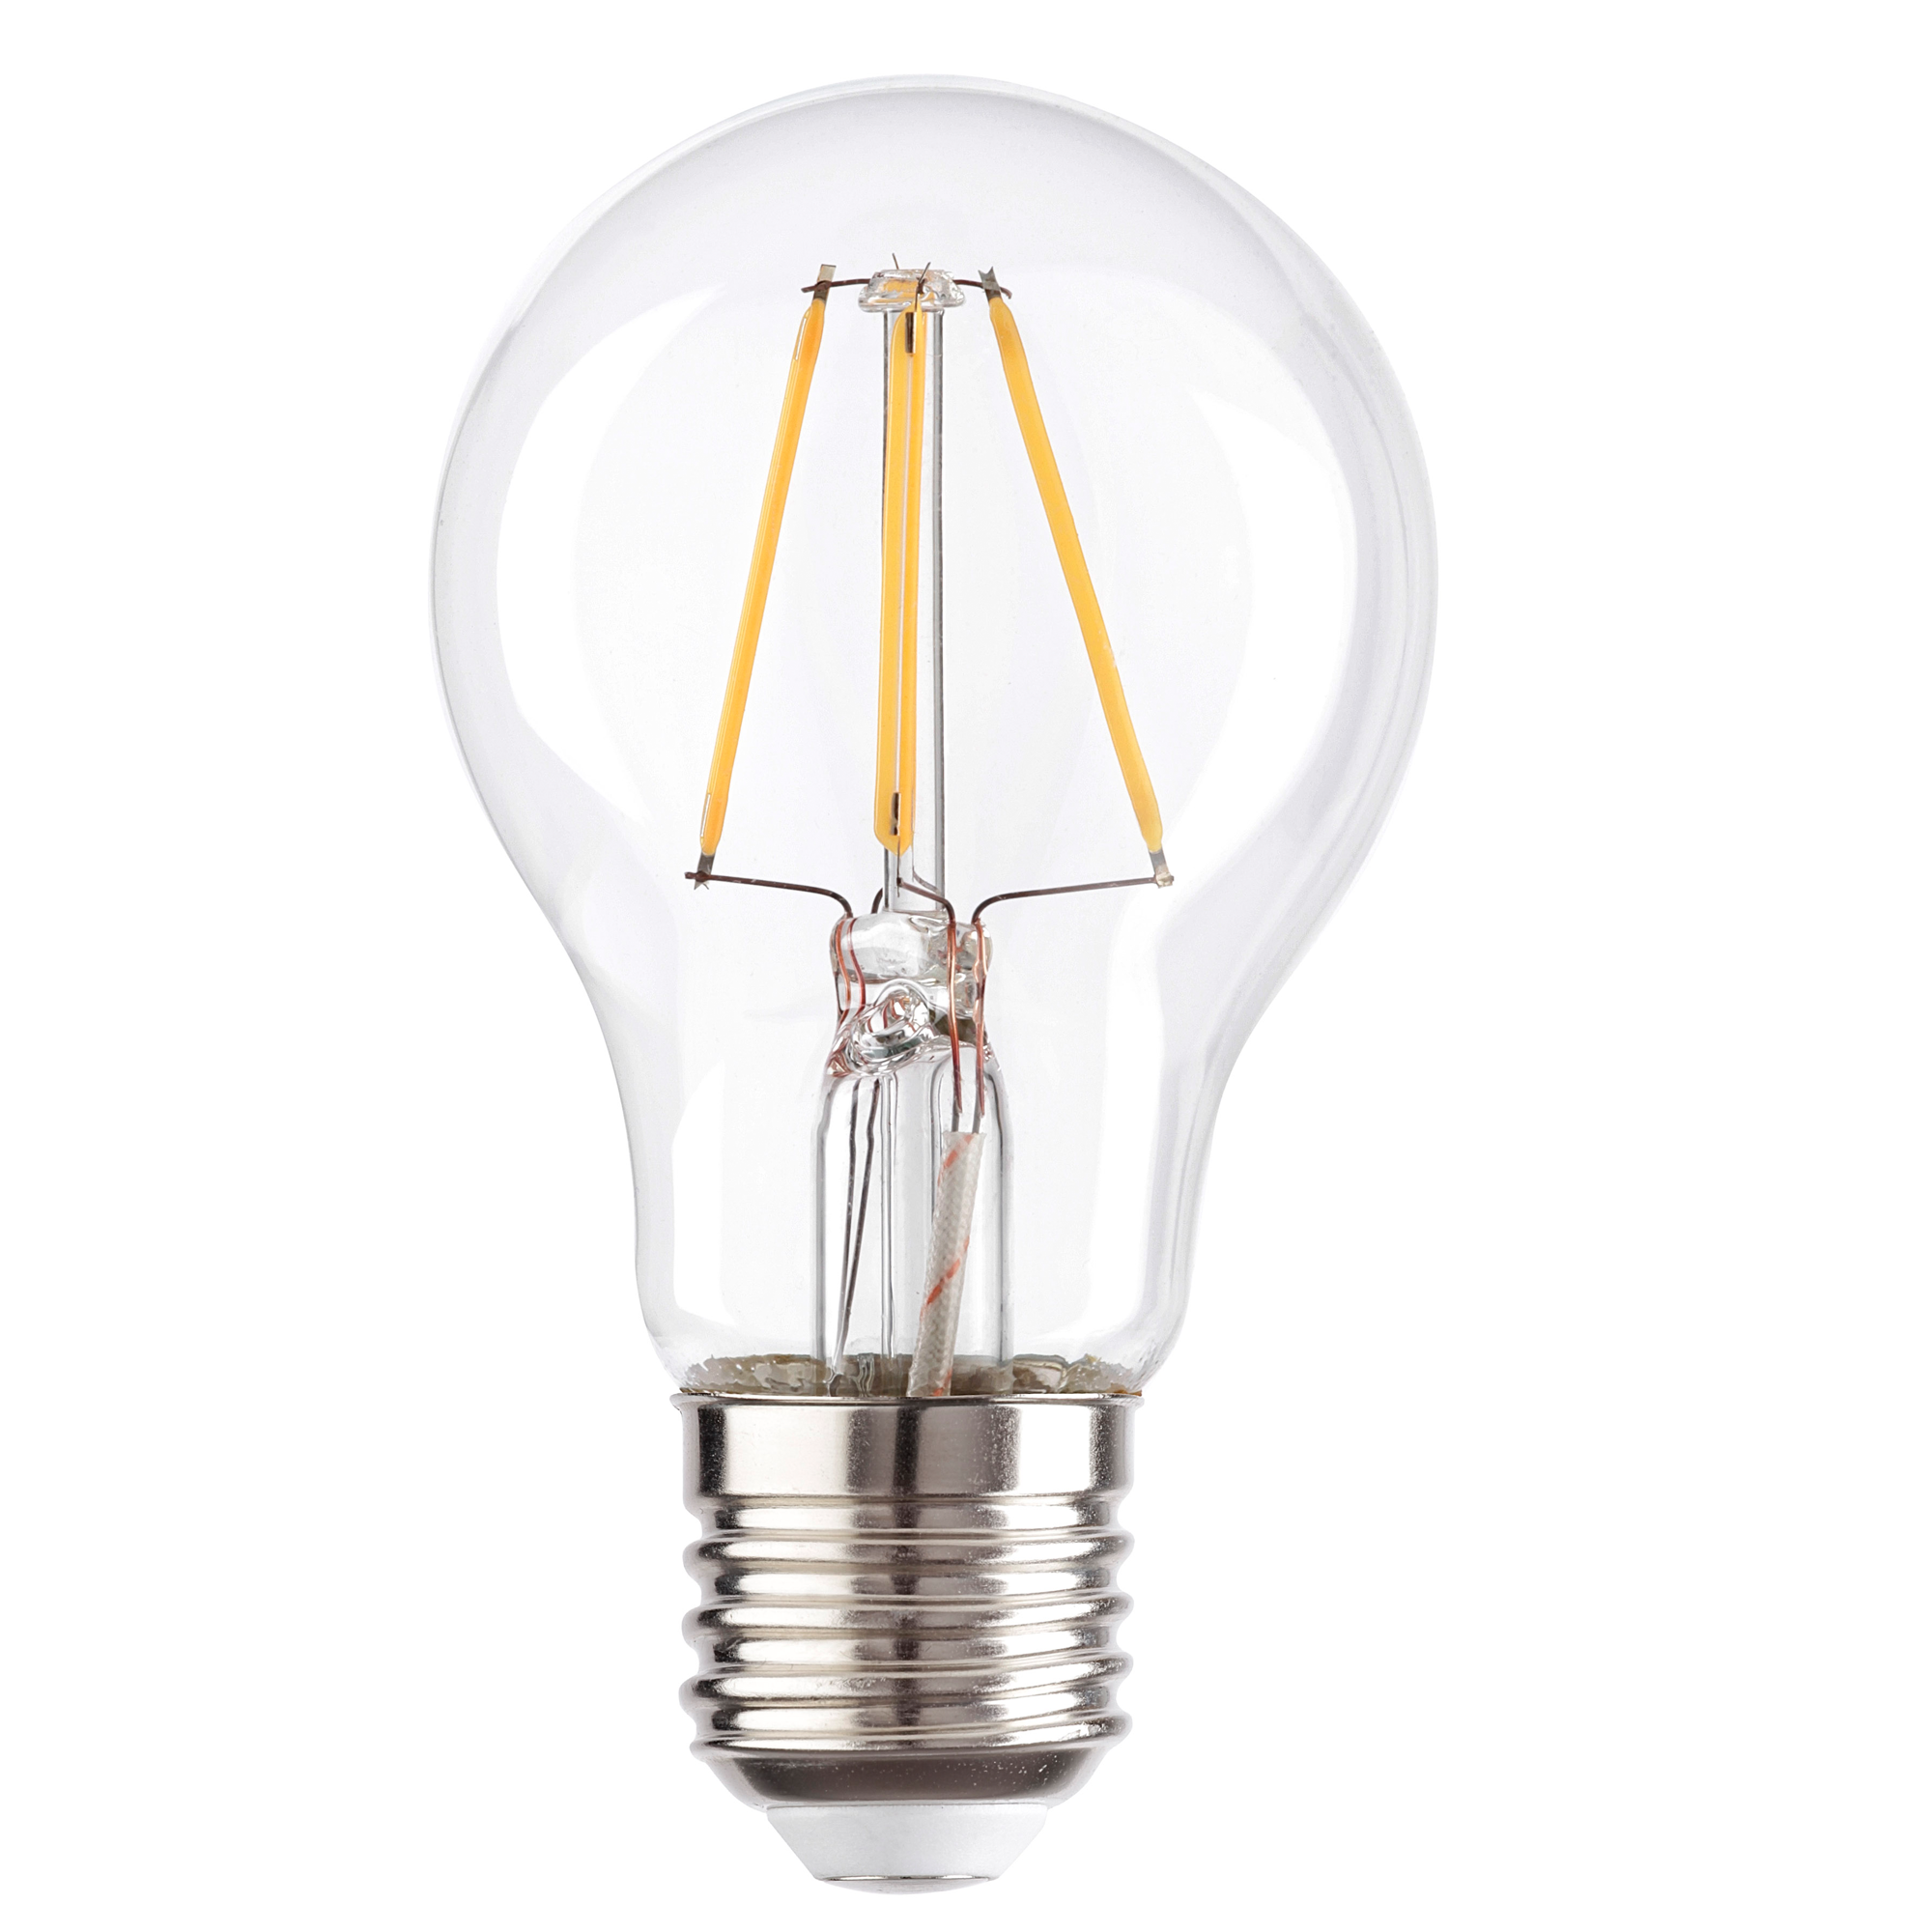 appliance lamp of can most filament bright white bulb magnificent bulbs kinds led finesse light